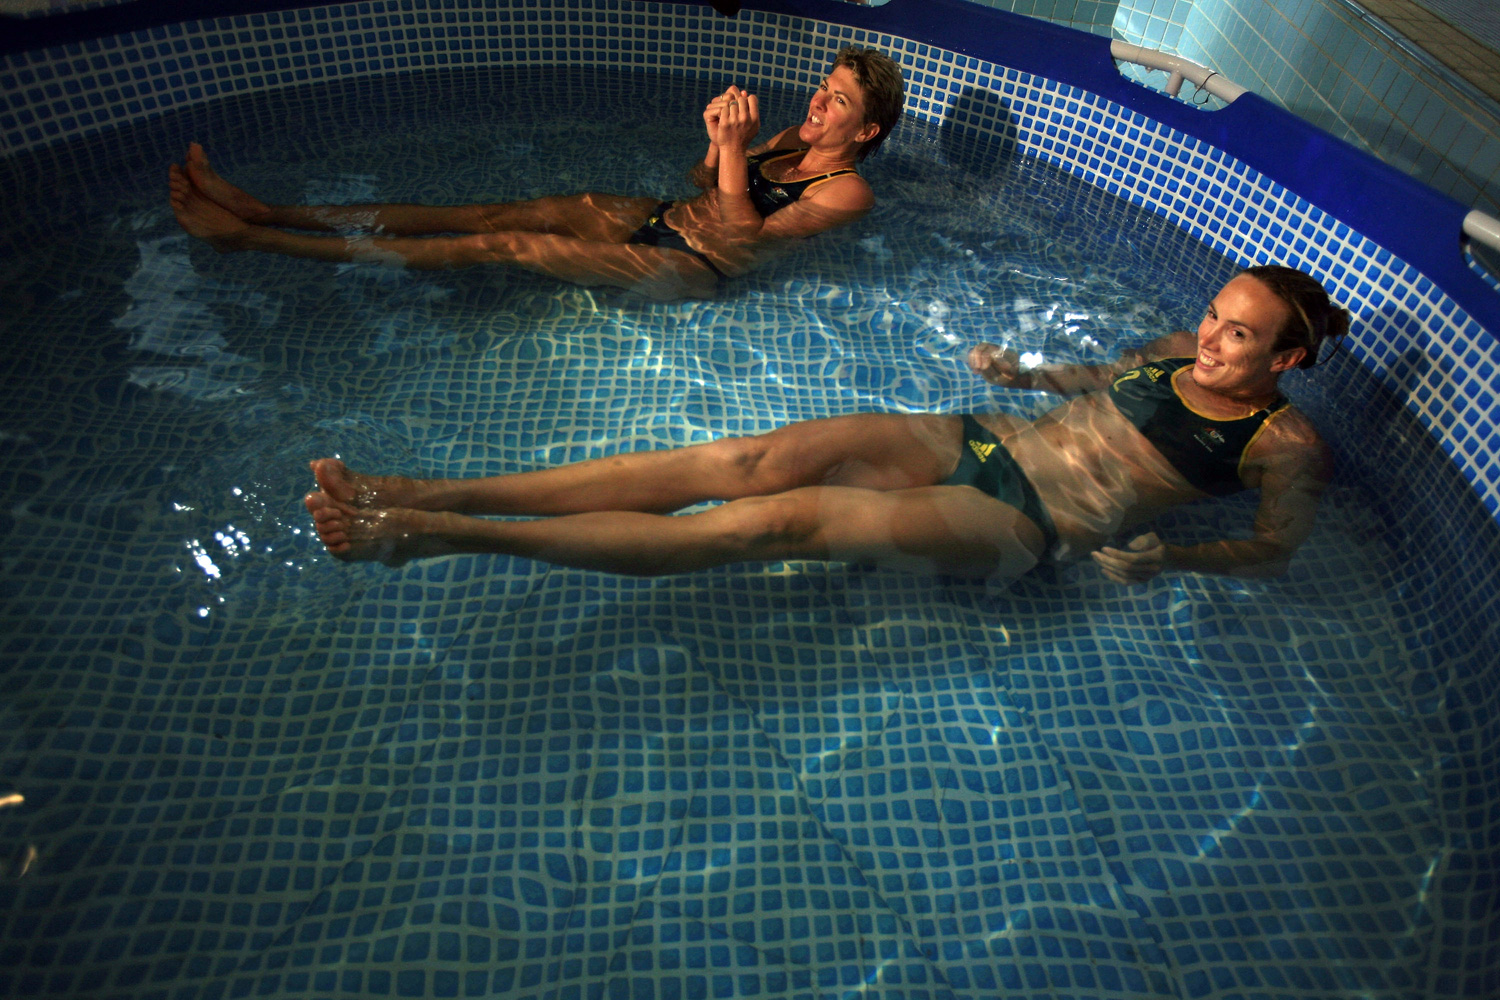 Australian Olympic Beach Volleyball players Natalie Cook (L) and Tamsin Barnett (R) endure a plunge in the ice bath at the Fitness First Recovery Centre at the Western Academy of Beijing.